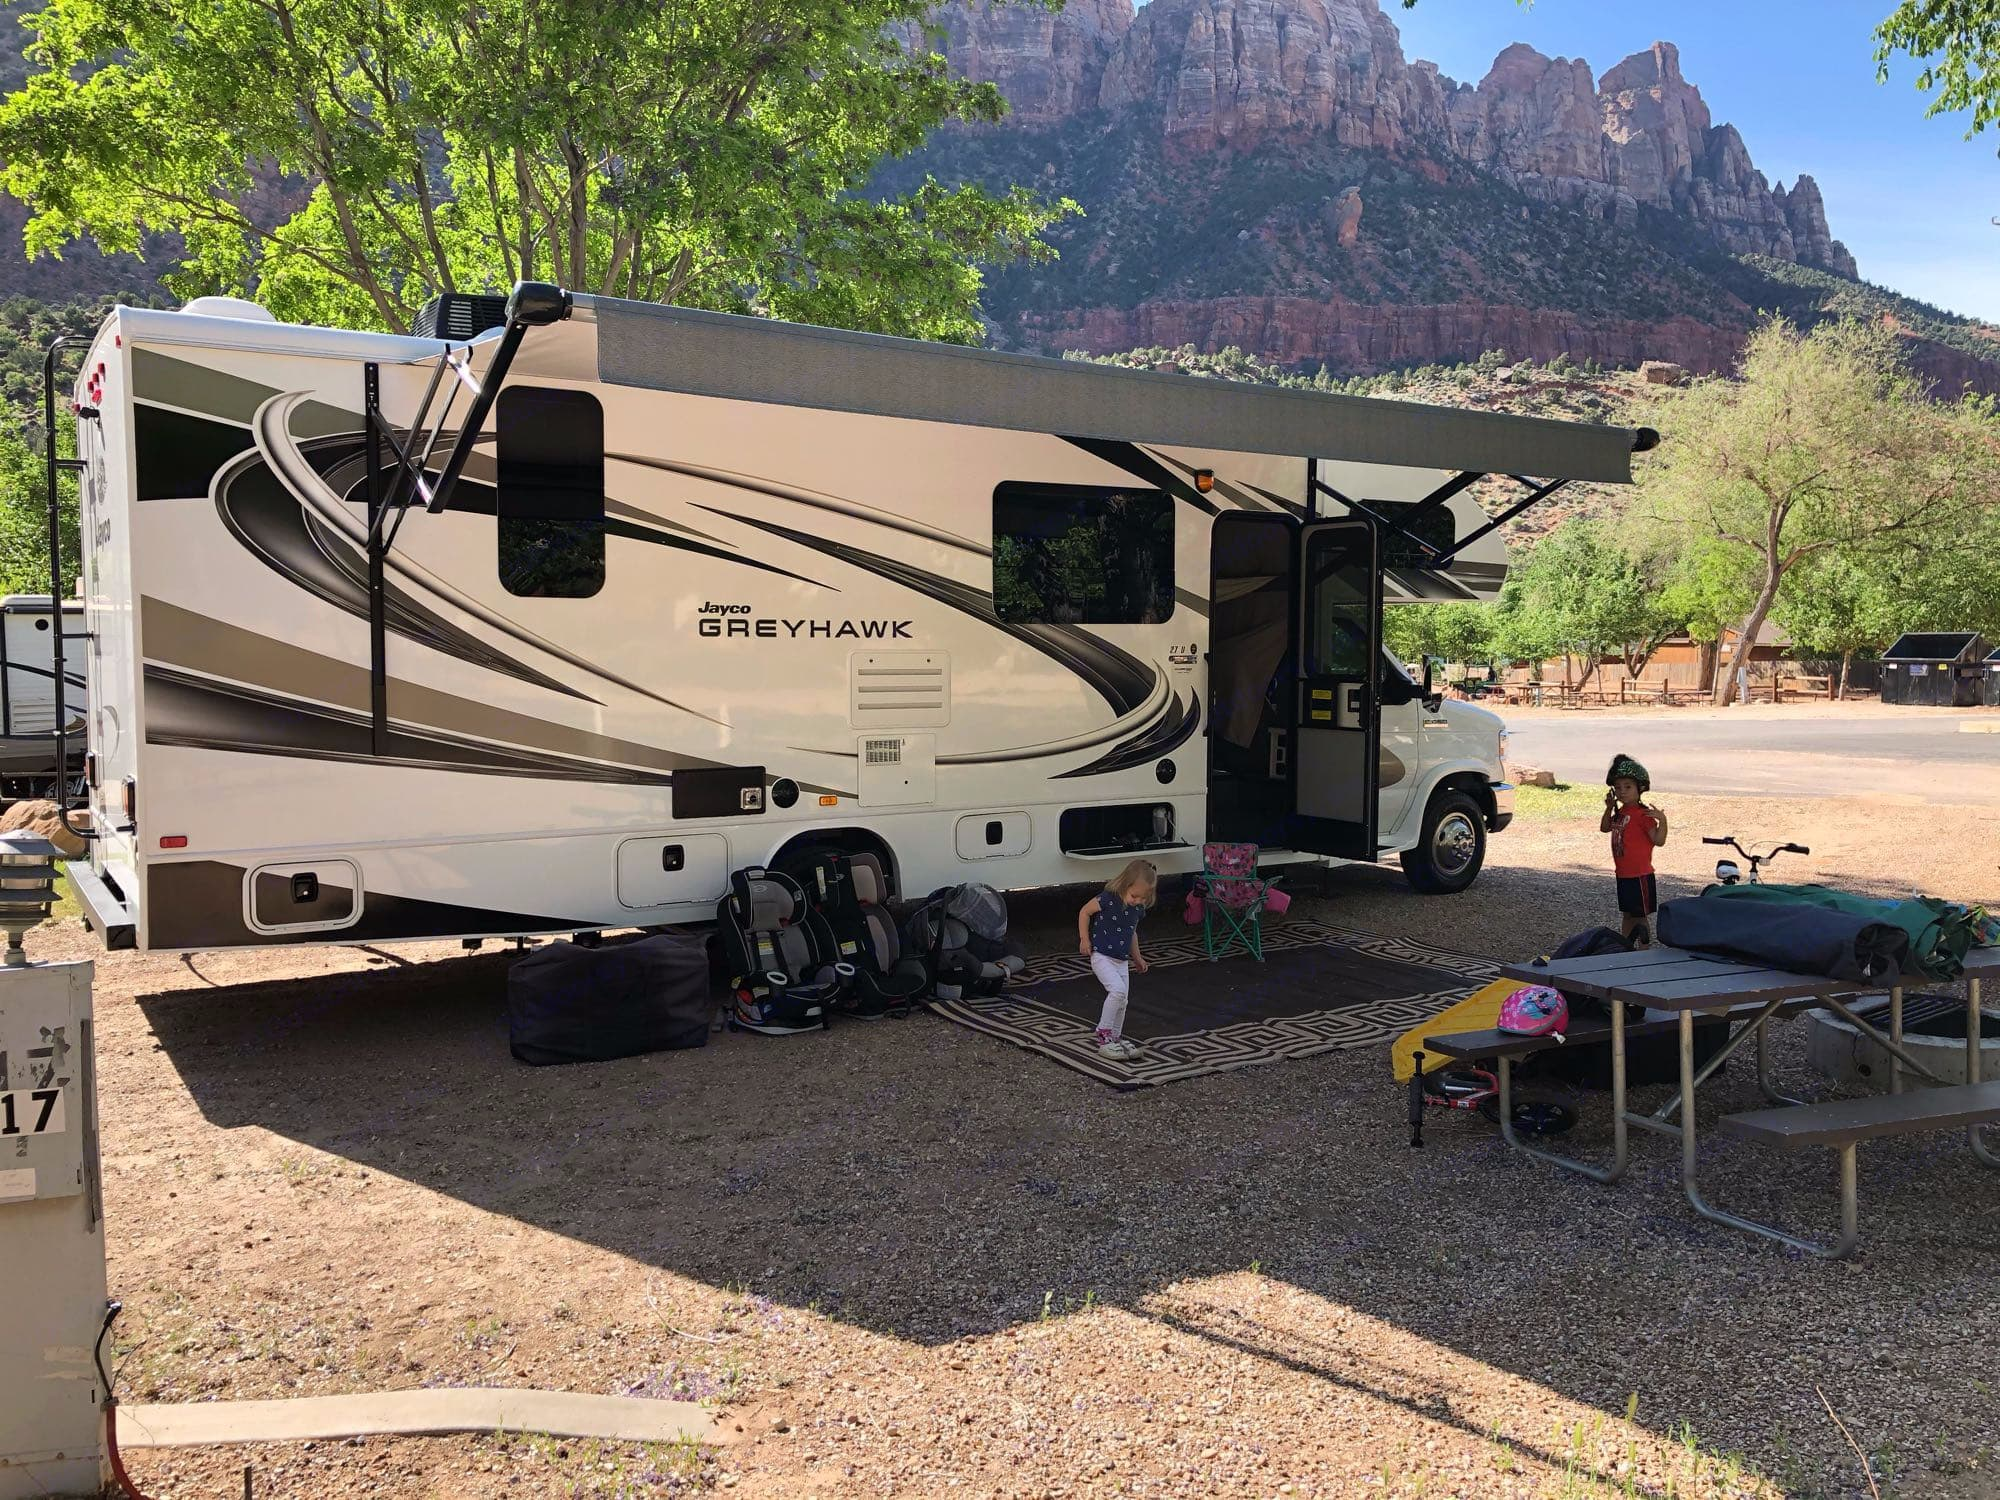 Large awning to cover your campsite. Jayco Greyhawk 2020